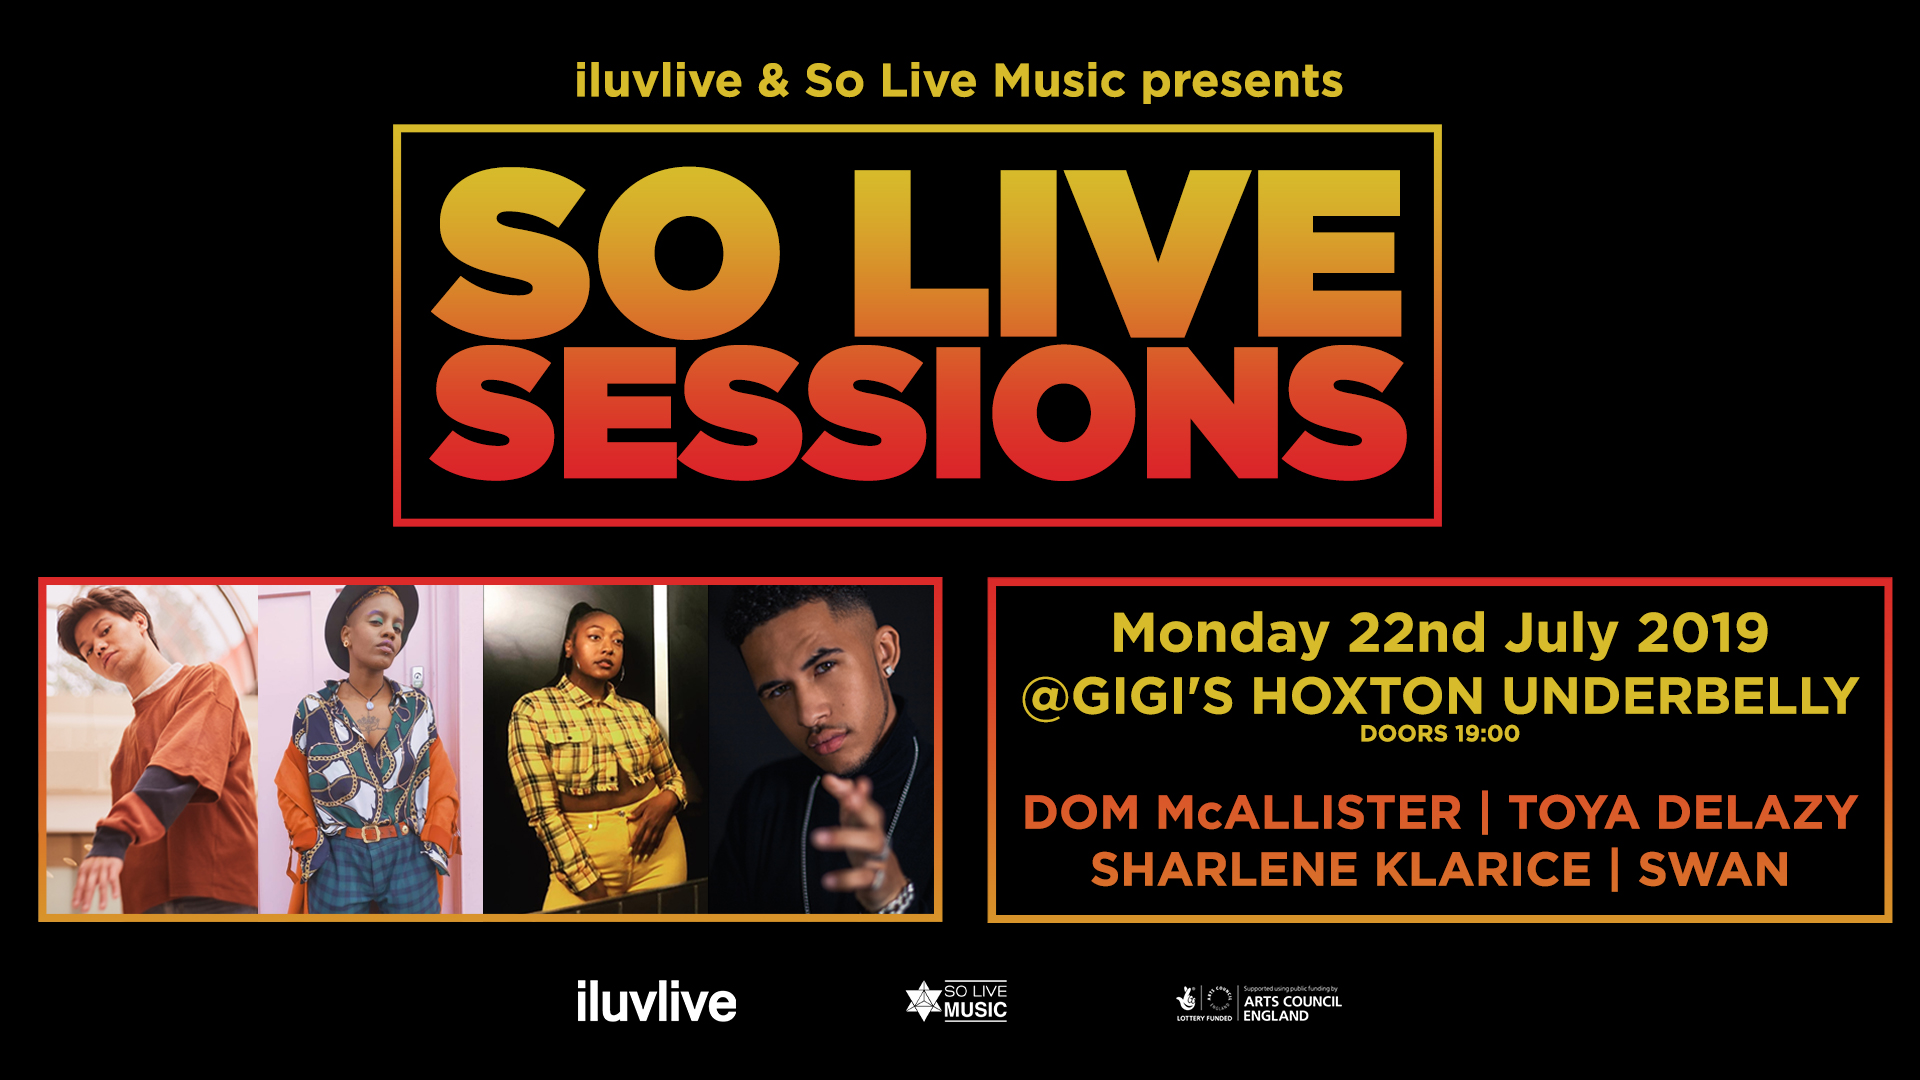 So Live Session FB Banner 22.07.19.jpg